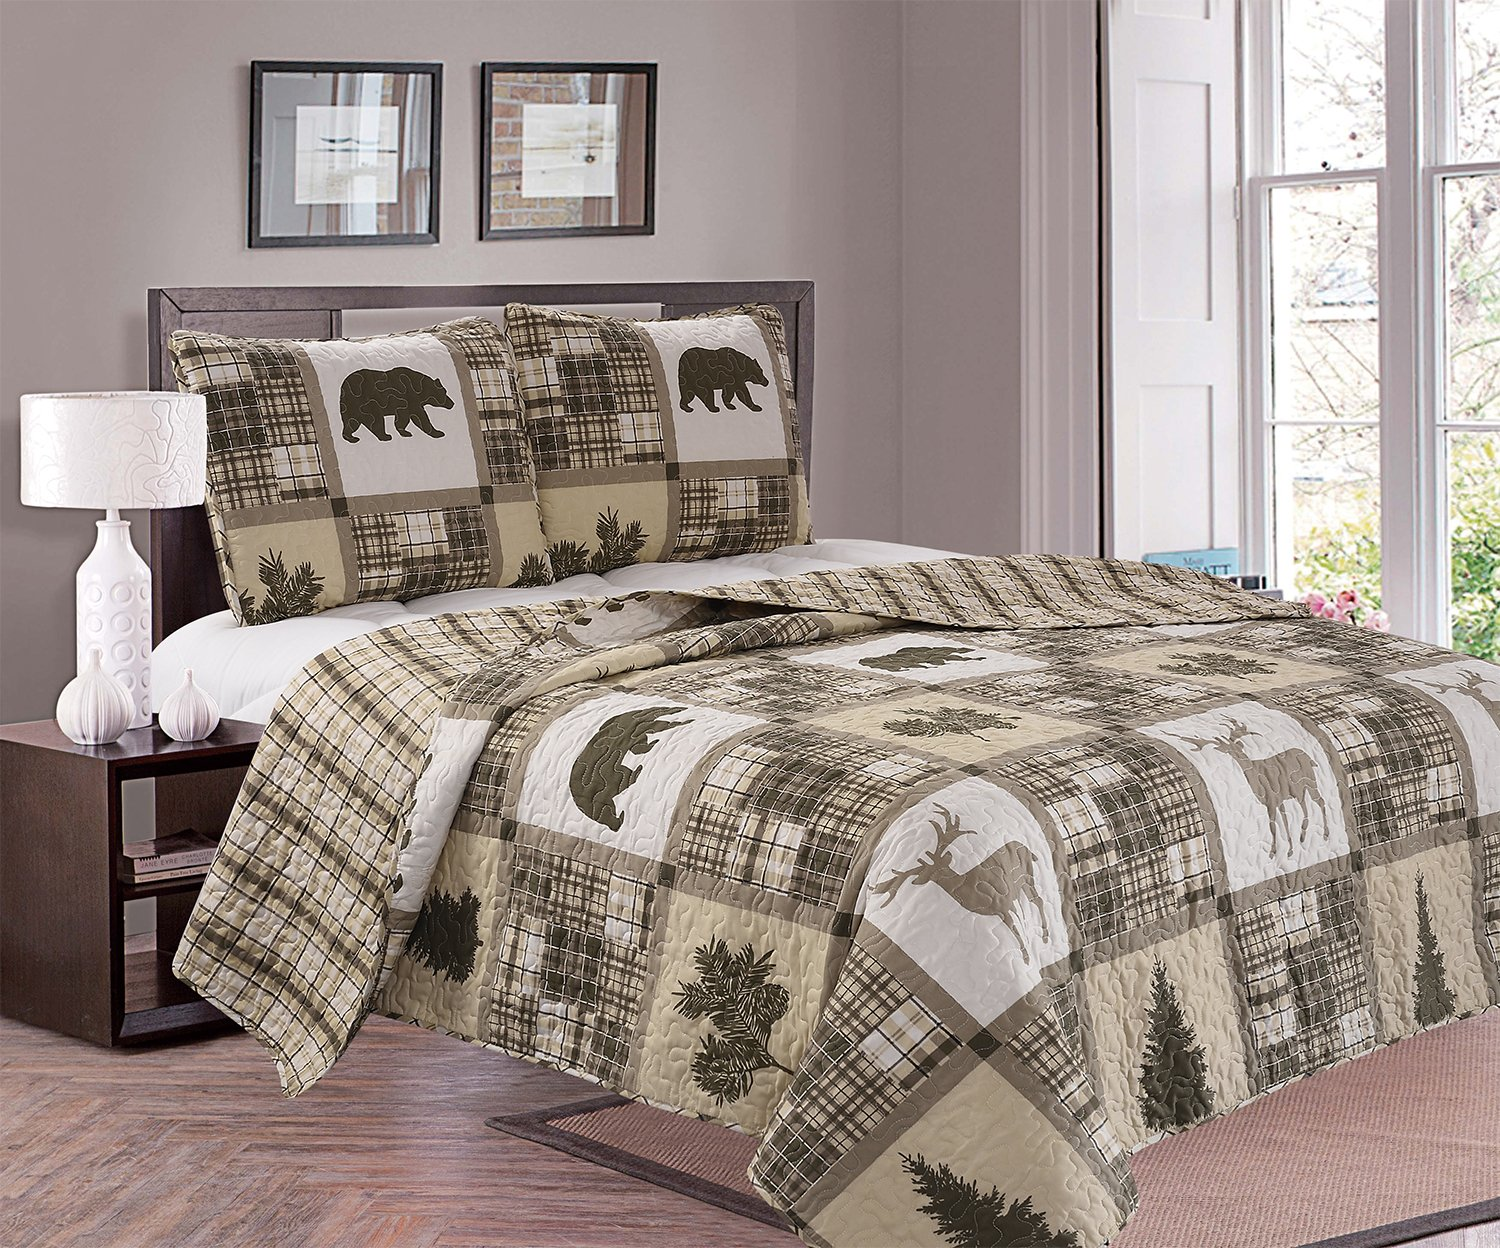 Great Bay Home 2-Piece Lodge Quilt Set with Shams. Durable Cabin Bedspread and Shams with Rustic Printed Pattern. Stonehurst Collection Brand. (Twin)